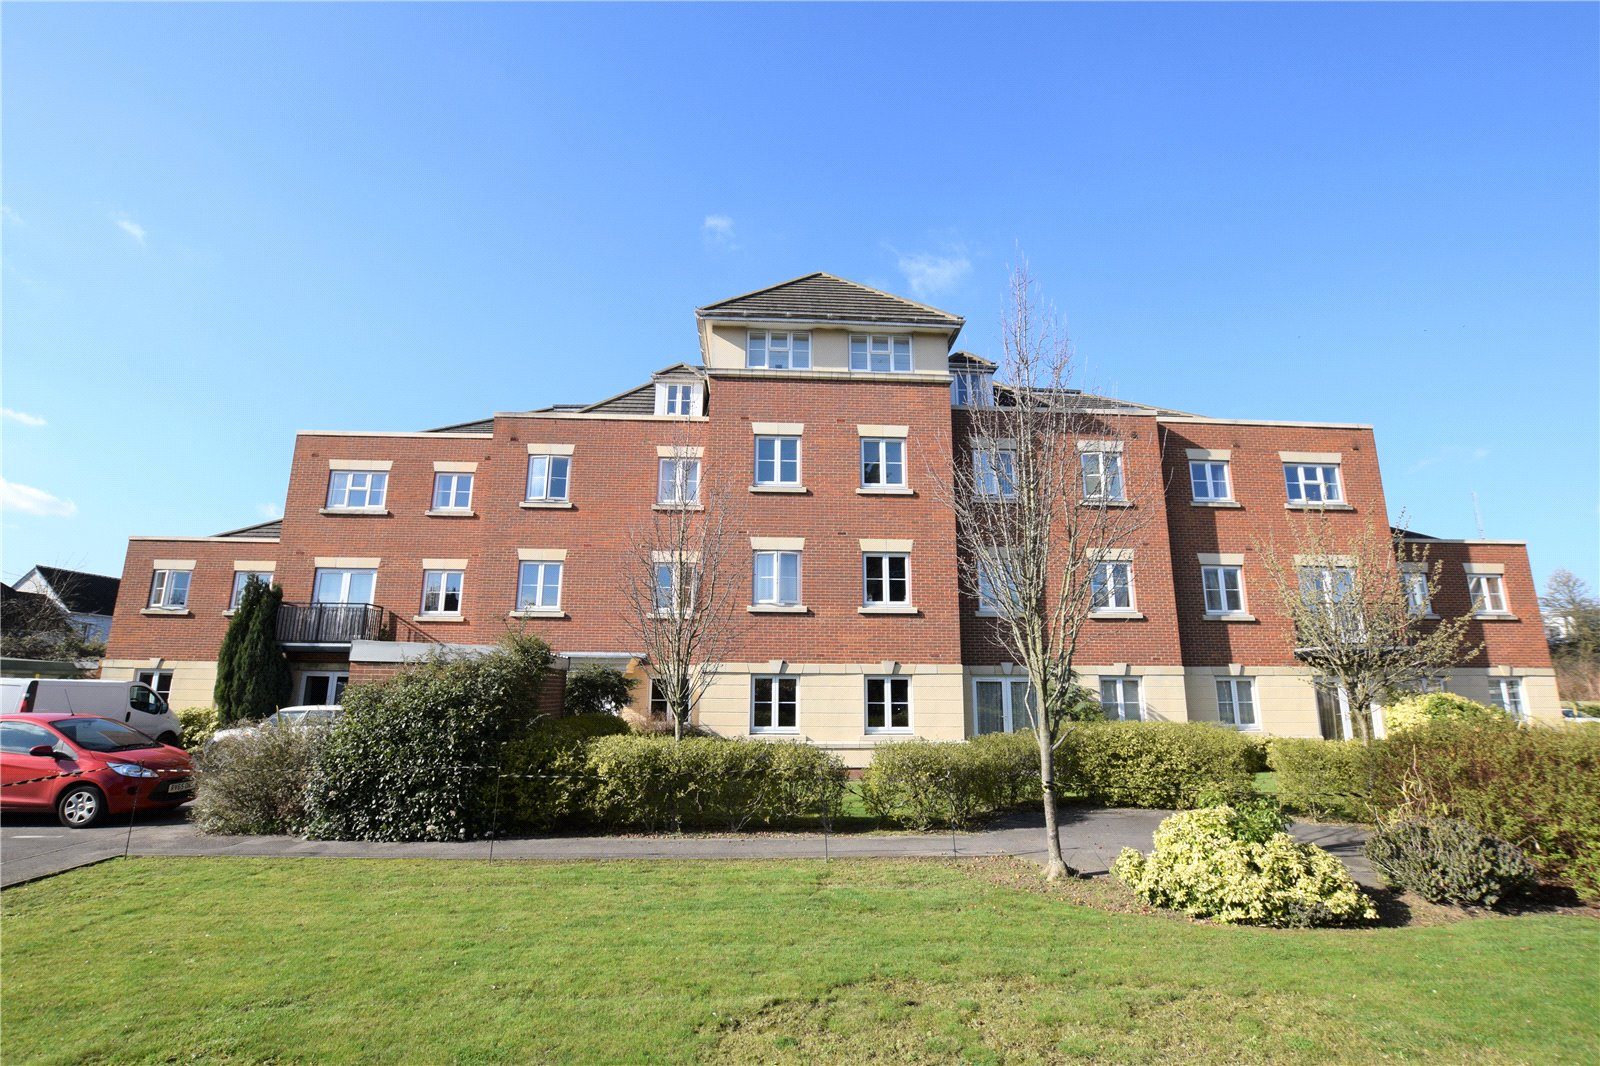 2 Bedrooms Apartment Flat for sale in Swan Court, Toad Lane, Blackwater, Hampshire, GU17